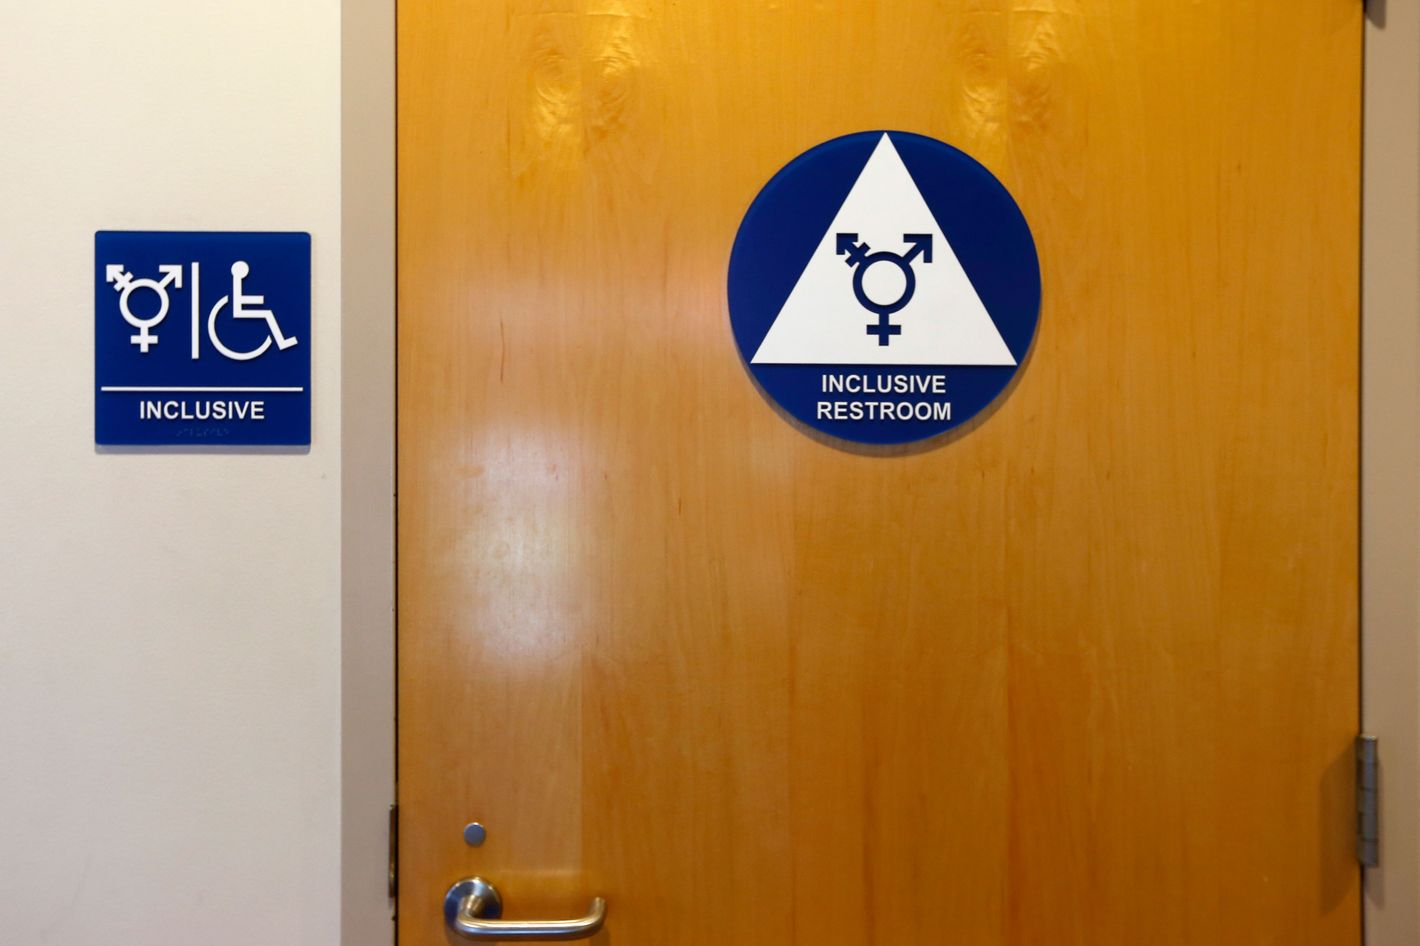 California to Add Gender-Neutral Bathrooms on neutral colored bathrooms, neutral people, neutral science, neutral bathroom themes, neutral interior decorating ideas, neutral blonde, neutral tile, floor designs, neutral bathroom flooring, neutral decor, neutral sign, neutral art, neutral wall design, neutral office design, neutral painting, neutral master bathroom, neutral patterns, neutral planet, neutral master bedroom bedding, neutral quilts,